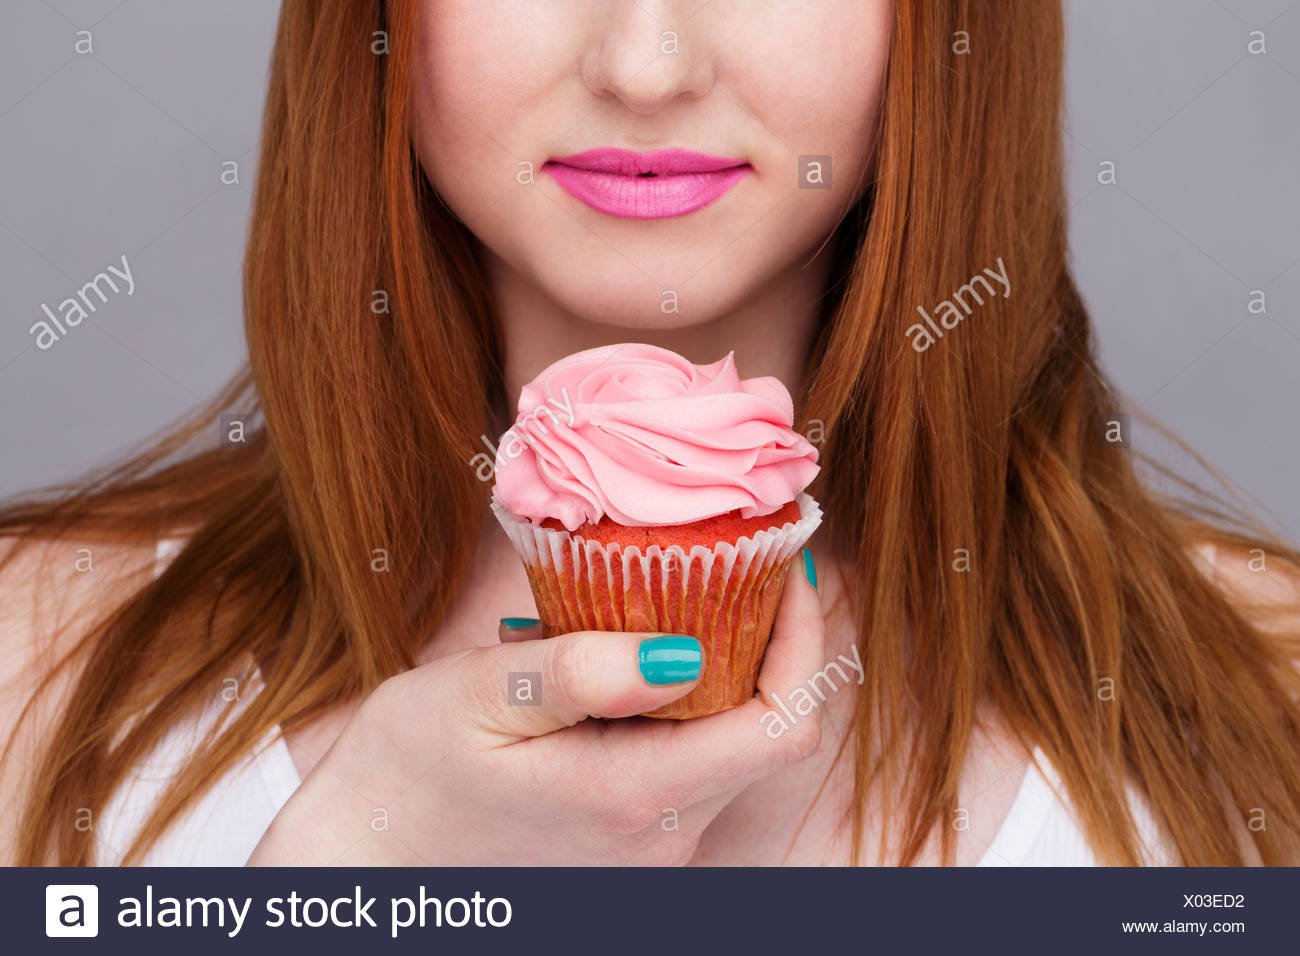 Cropped image of young woman holding cupcake - Stock Photo